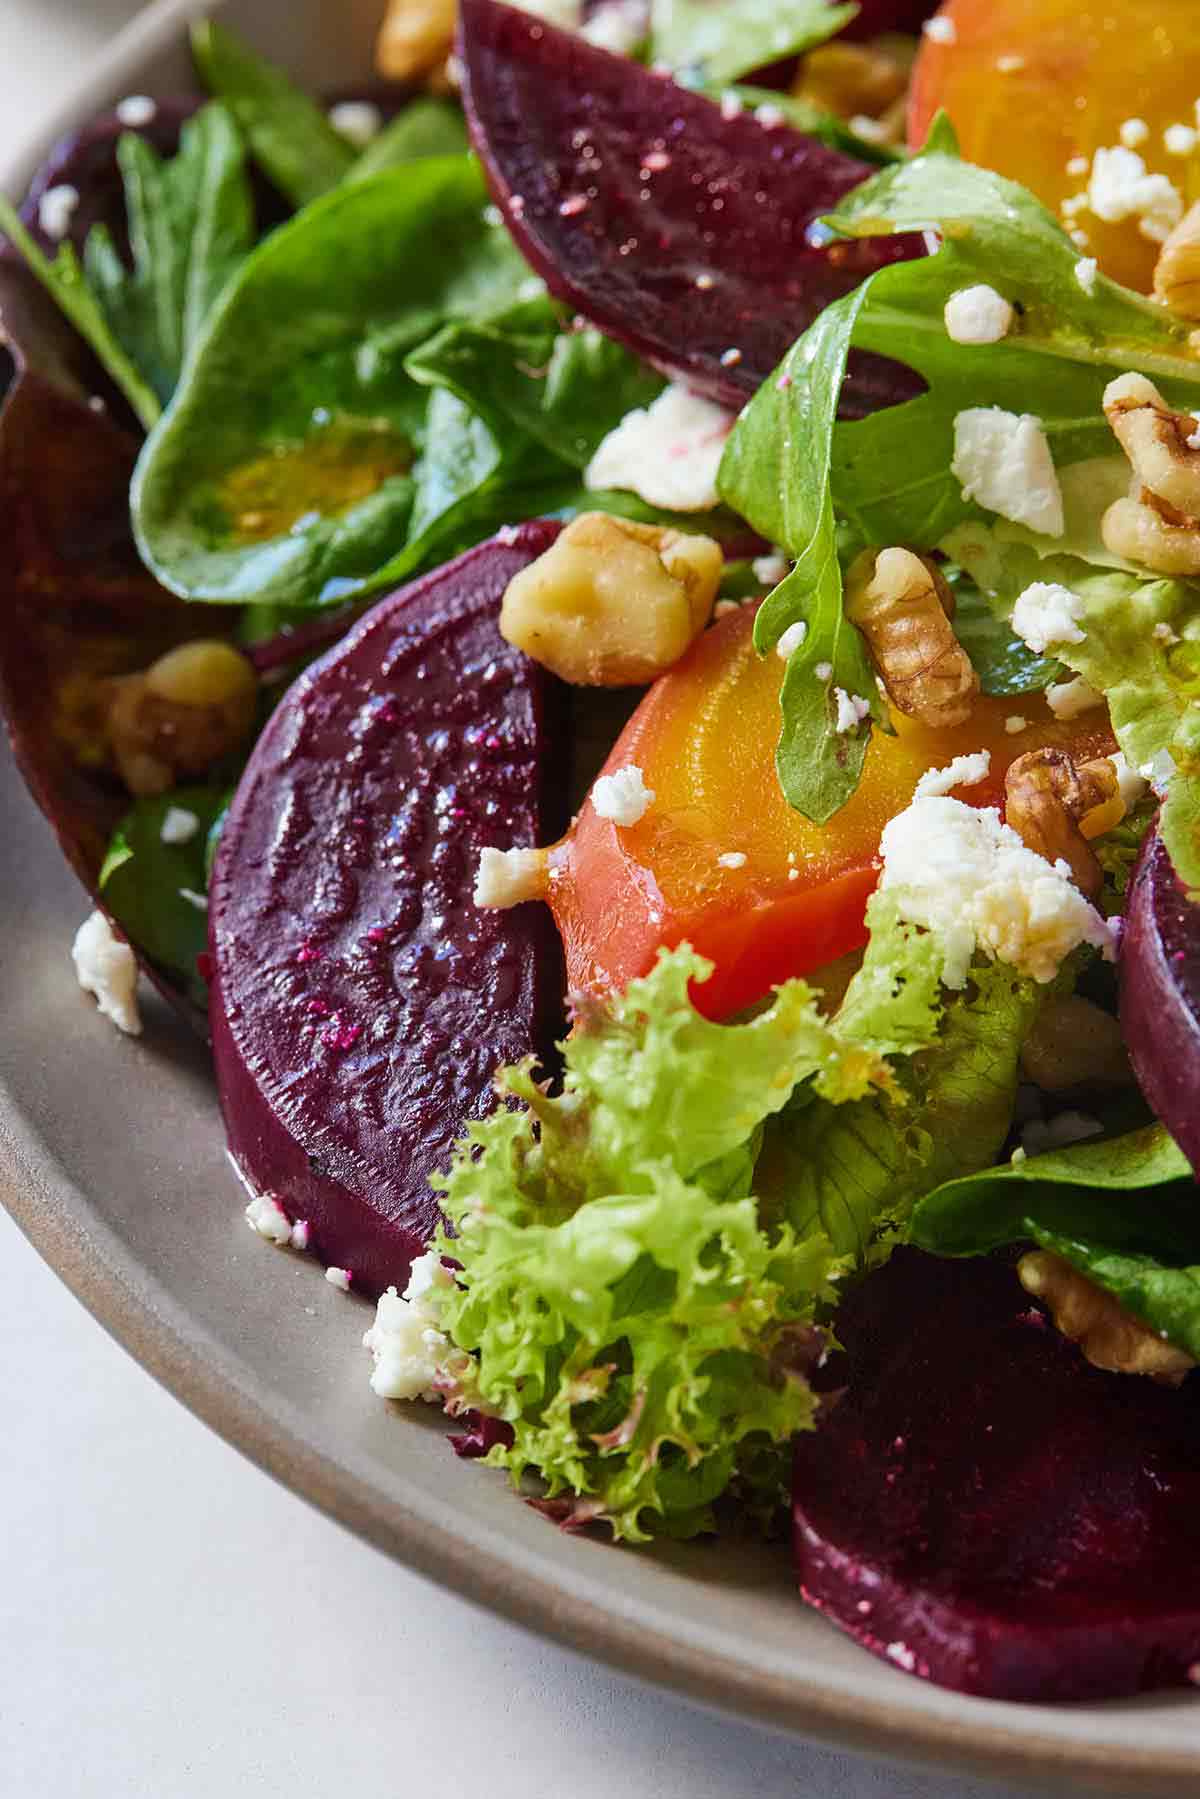 Close up image of a plate of beet salad.